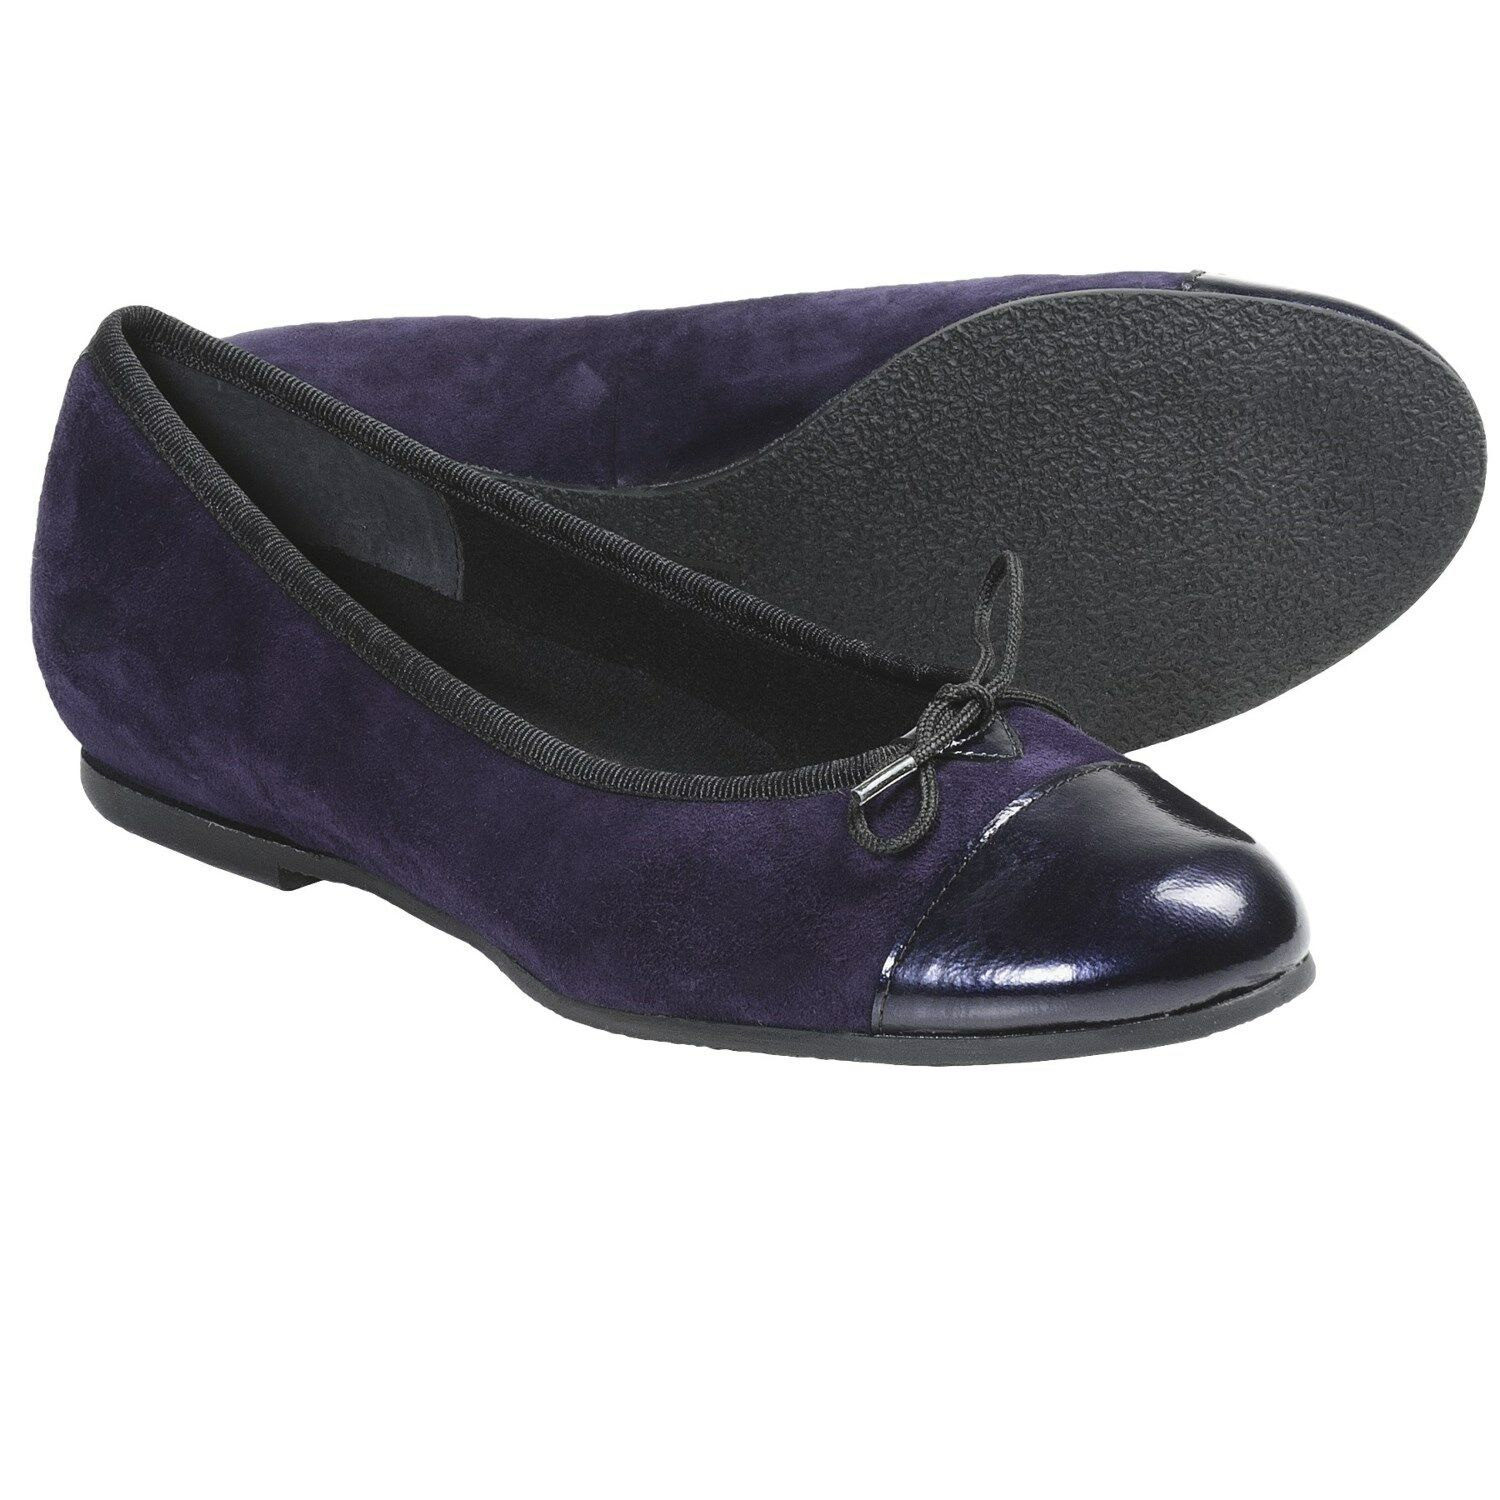 $170 Munro American Sky Shoes Made Suede Donna Flats Shoes, Made Shoes in US 9.5 1f33aa